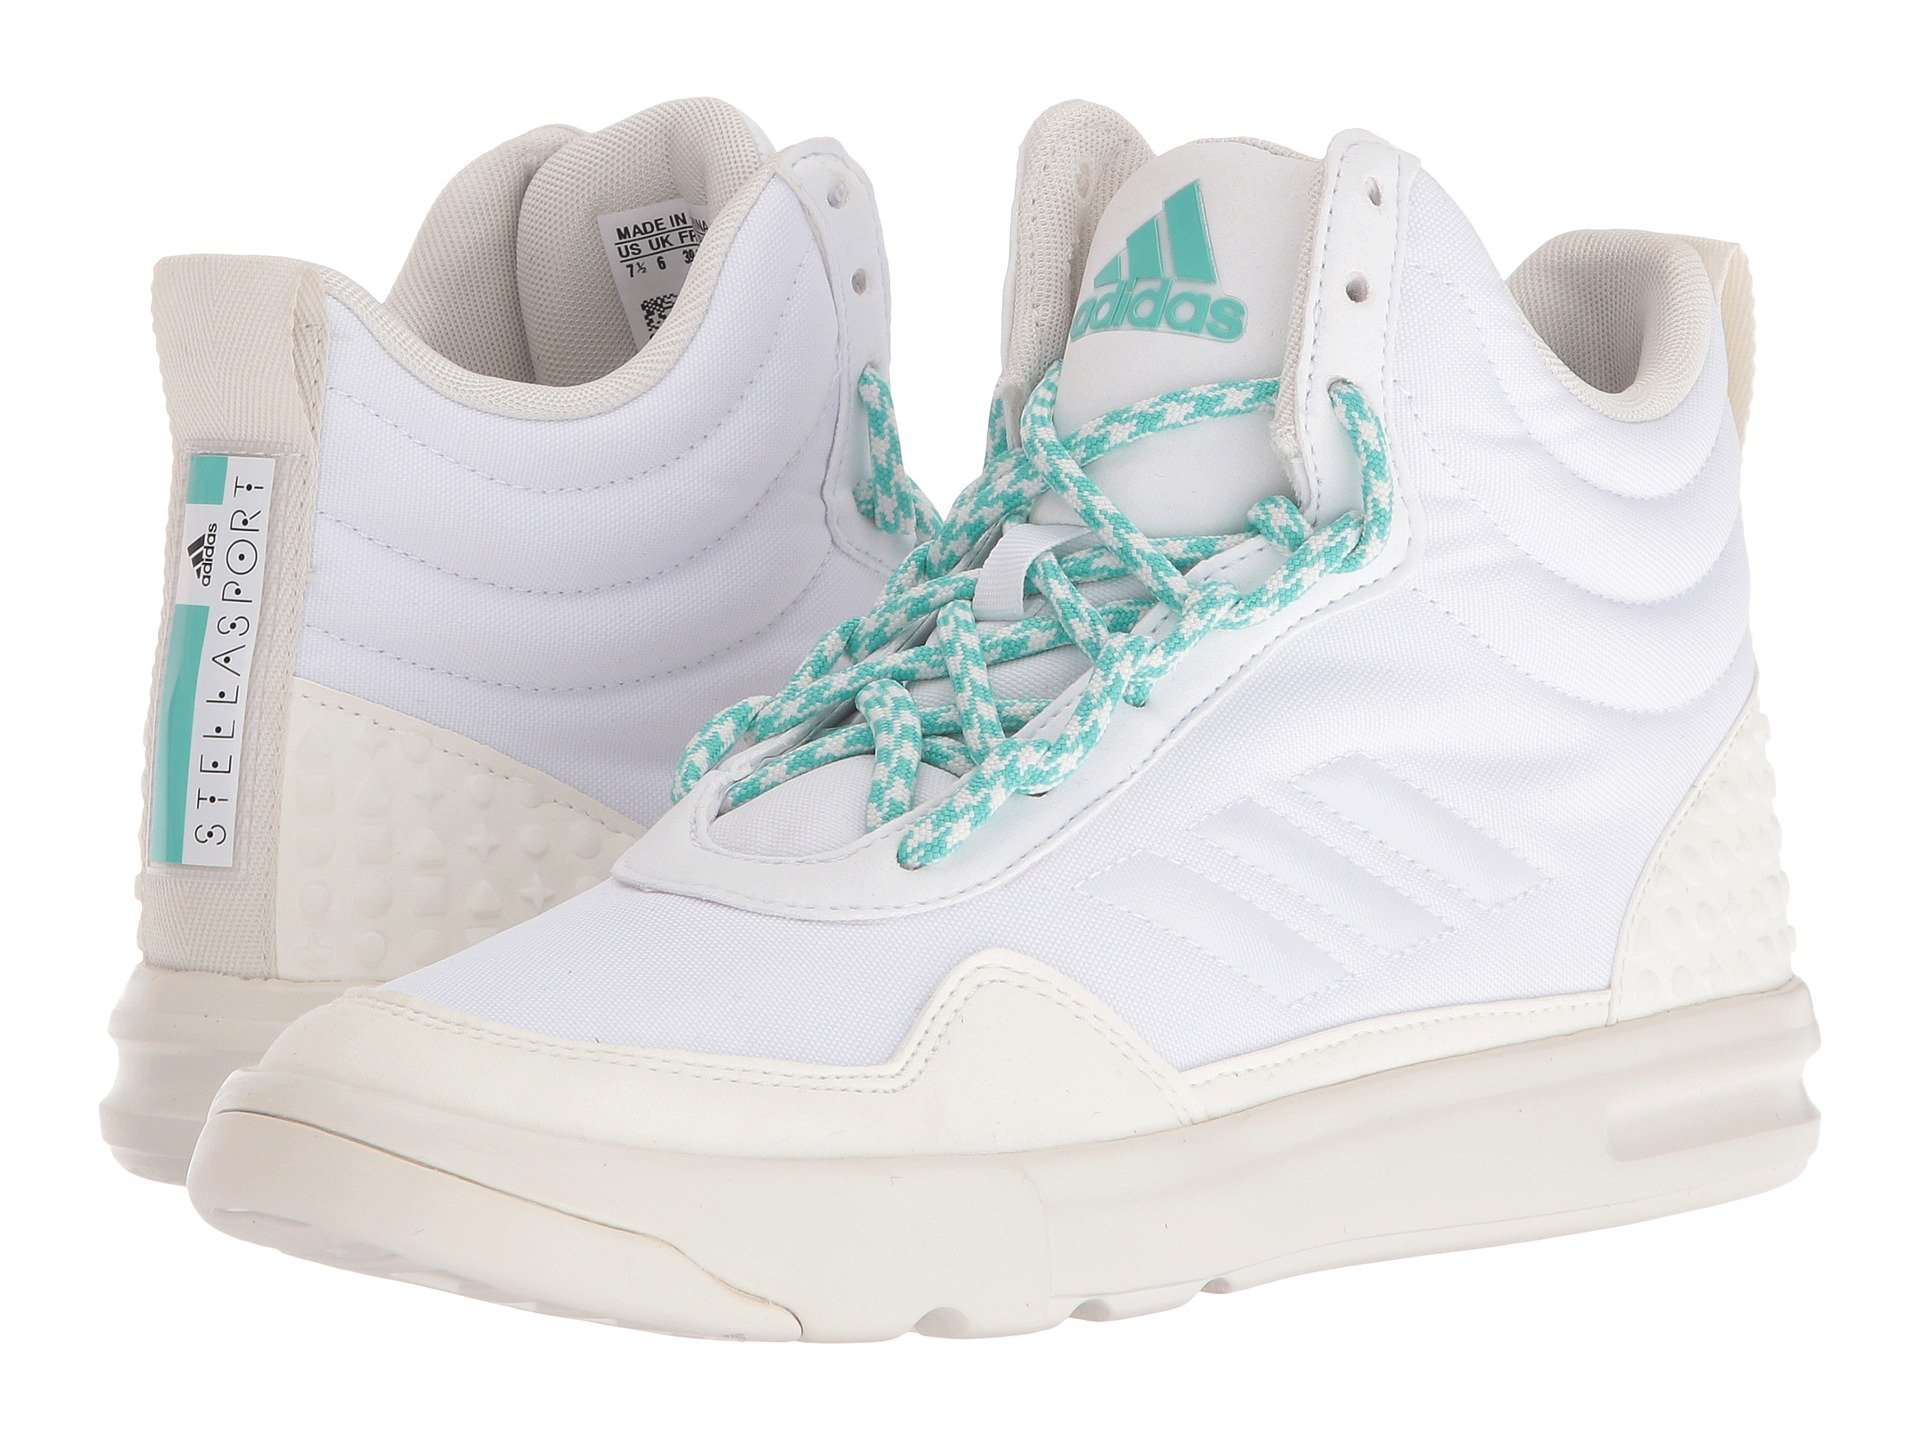 6pm adidas womens shoes